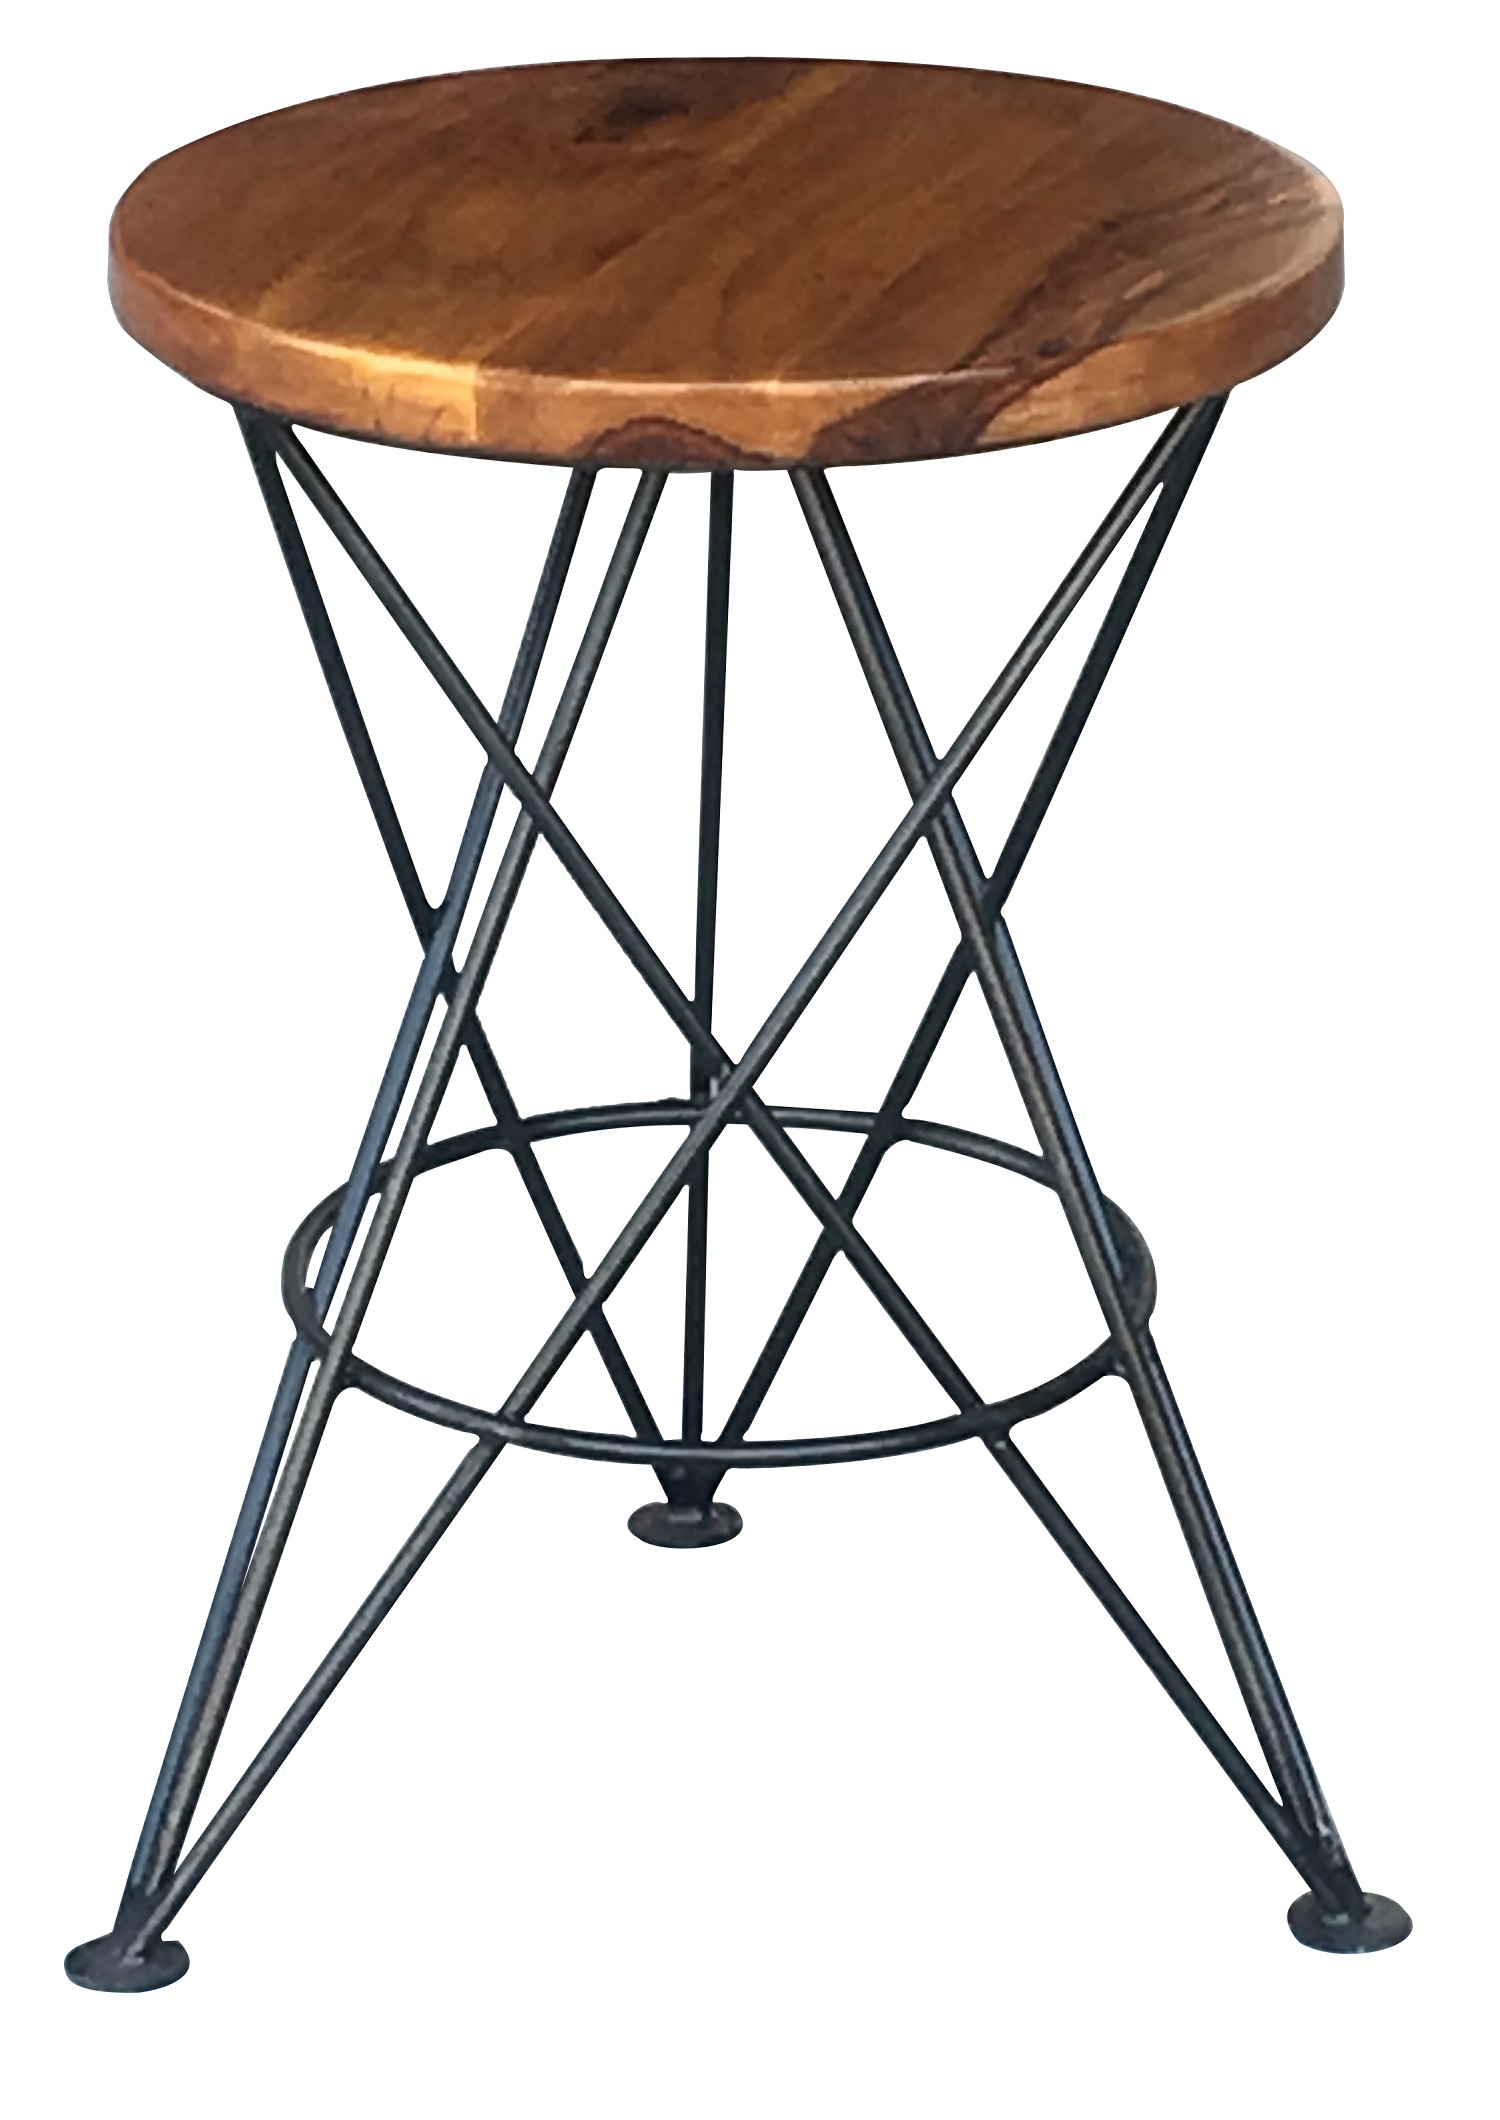 Wood And Metal Side Tables Solid Sheesham Hard Wood Side Table With Modern Metal Legs